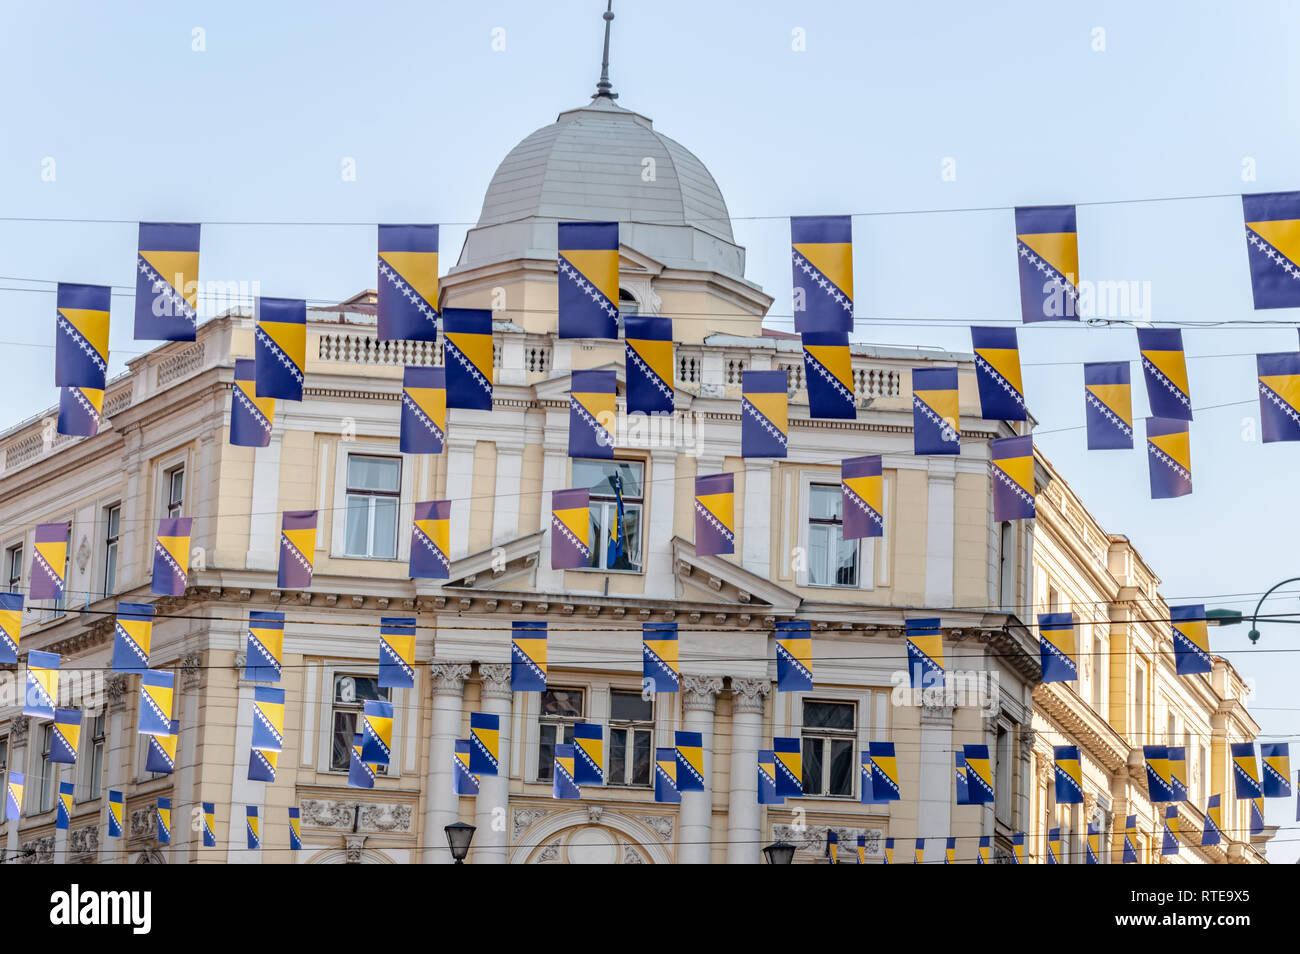 Sarajevo, Bosnia And Herzegovina. 1st March, 2019. . Thousands Bosnian flags on Marsala Tita street for Independence Day Credit: Vedad Ceric/Alamy Live News - Stock Image